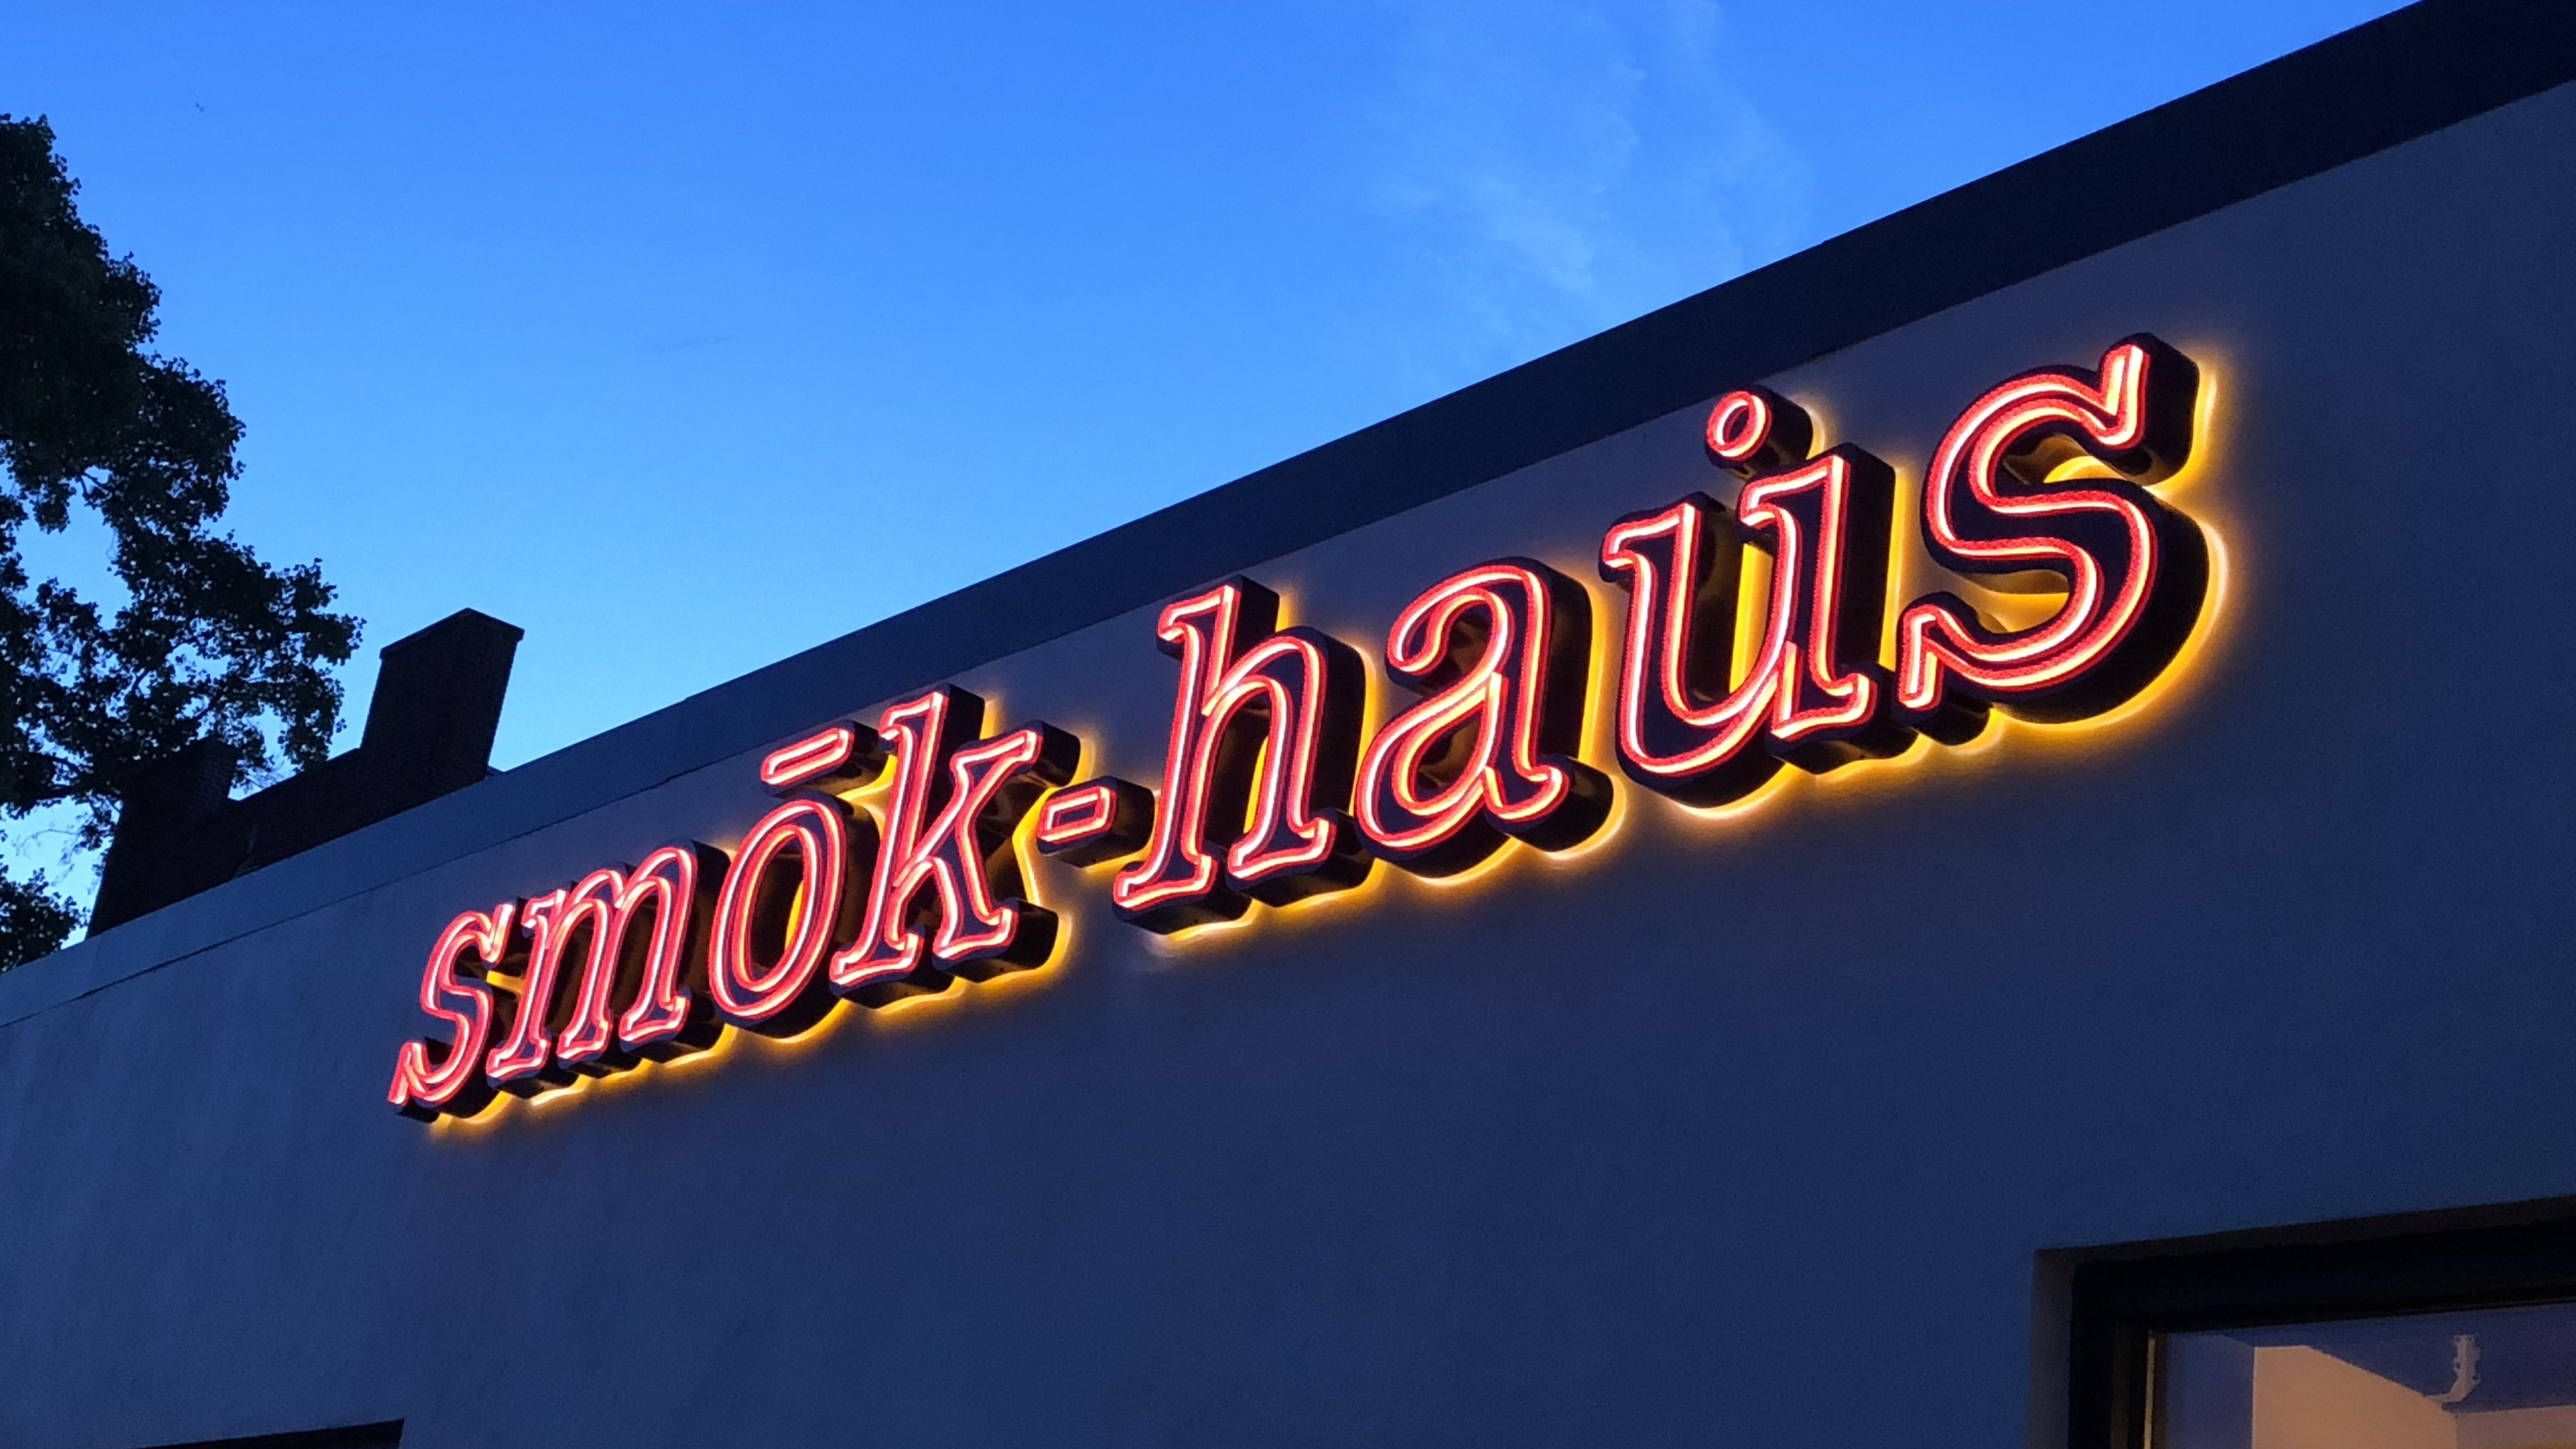 SMOK-HAUS reviews | Barbeque at 7 12th St - Garden City NY